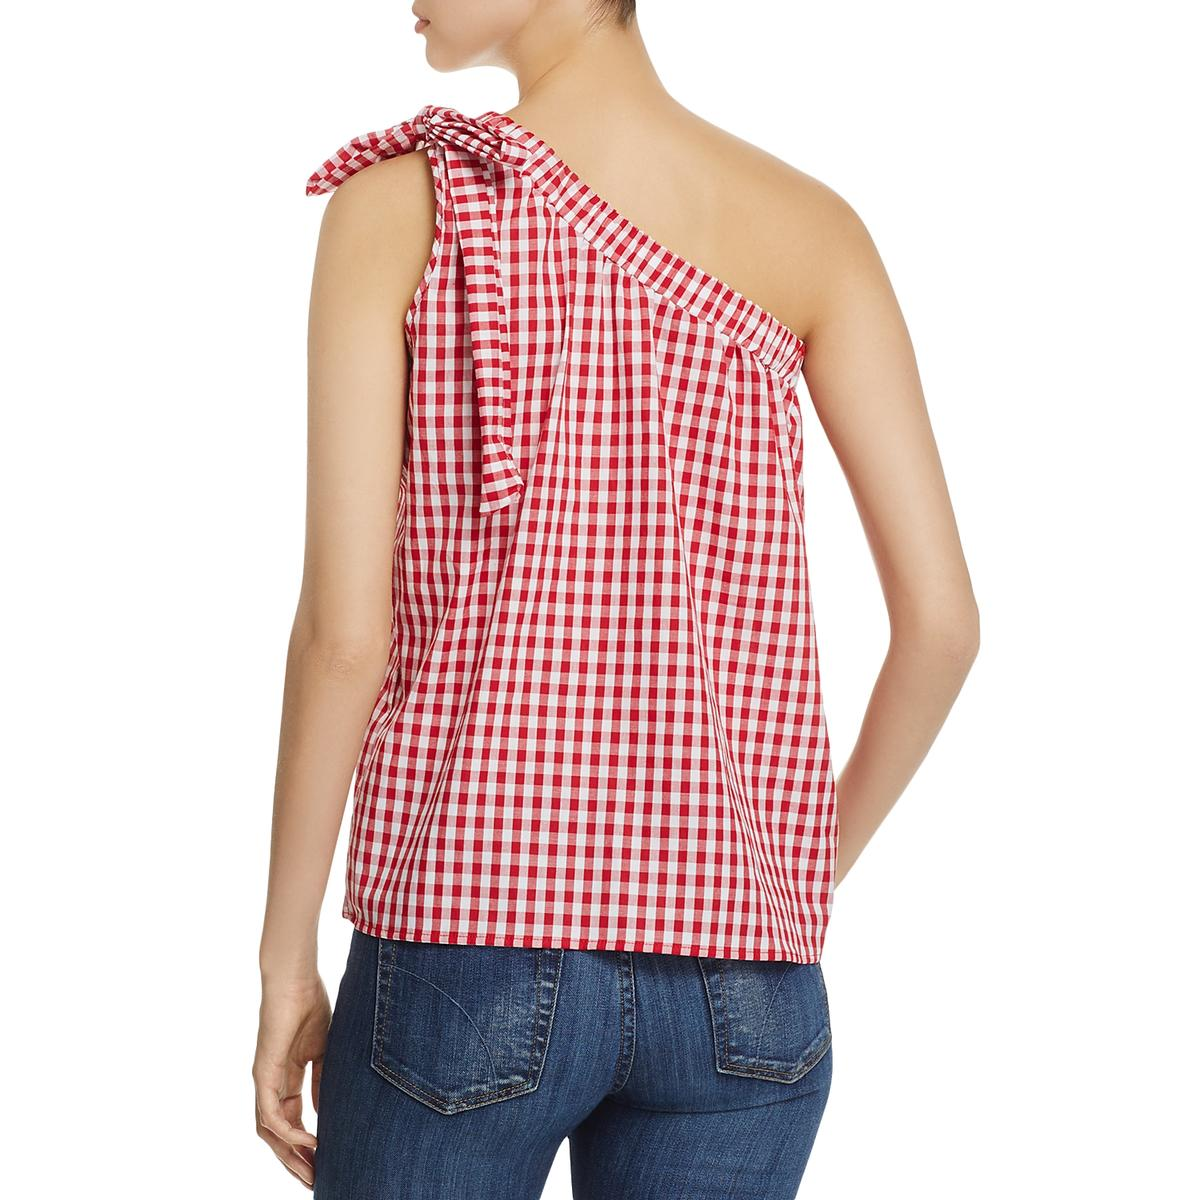 b9c9f11cecb303 Details about Elan Womens Checkered One Shoulder Expandible Casual Top  Shirt BHFO 0933